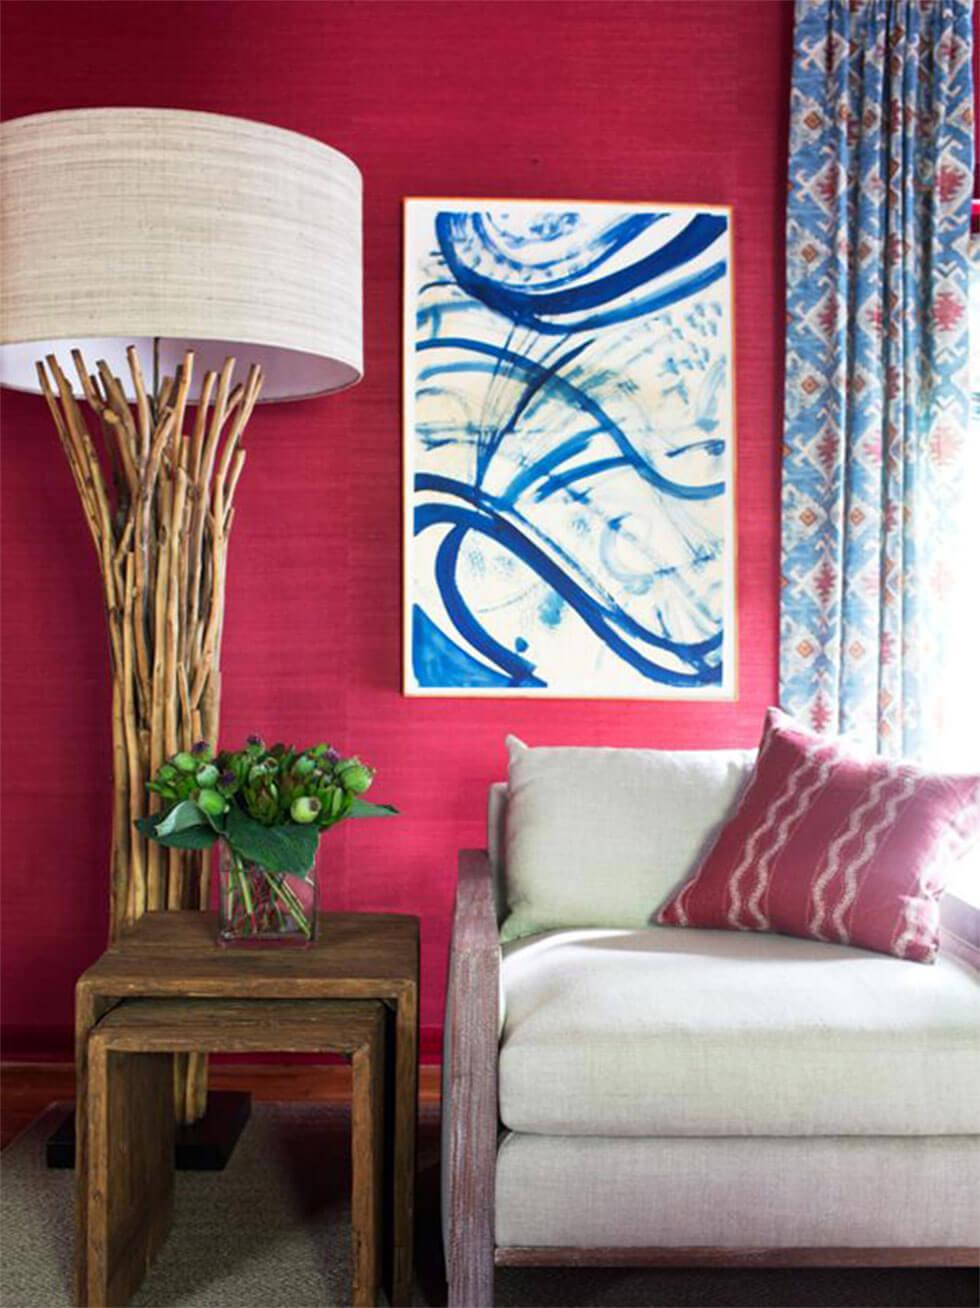 Red living room with a cream sofa, blue and white art, and a large lamp